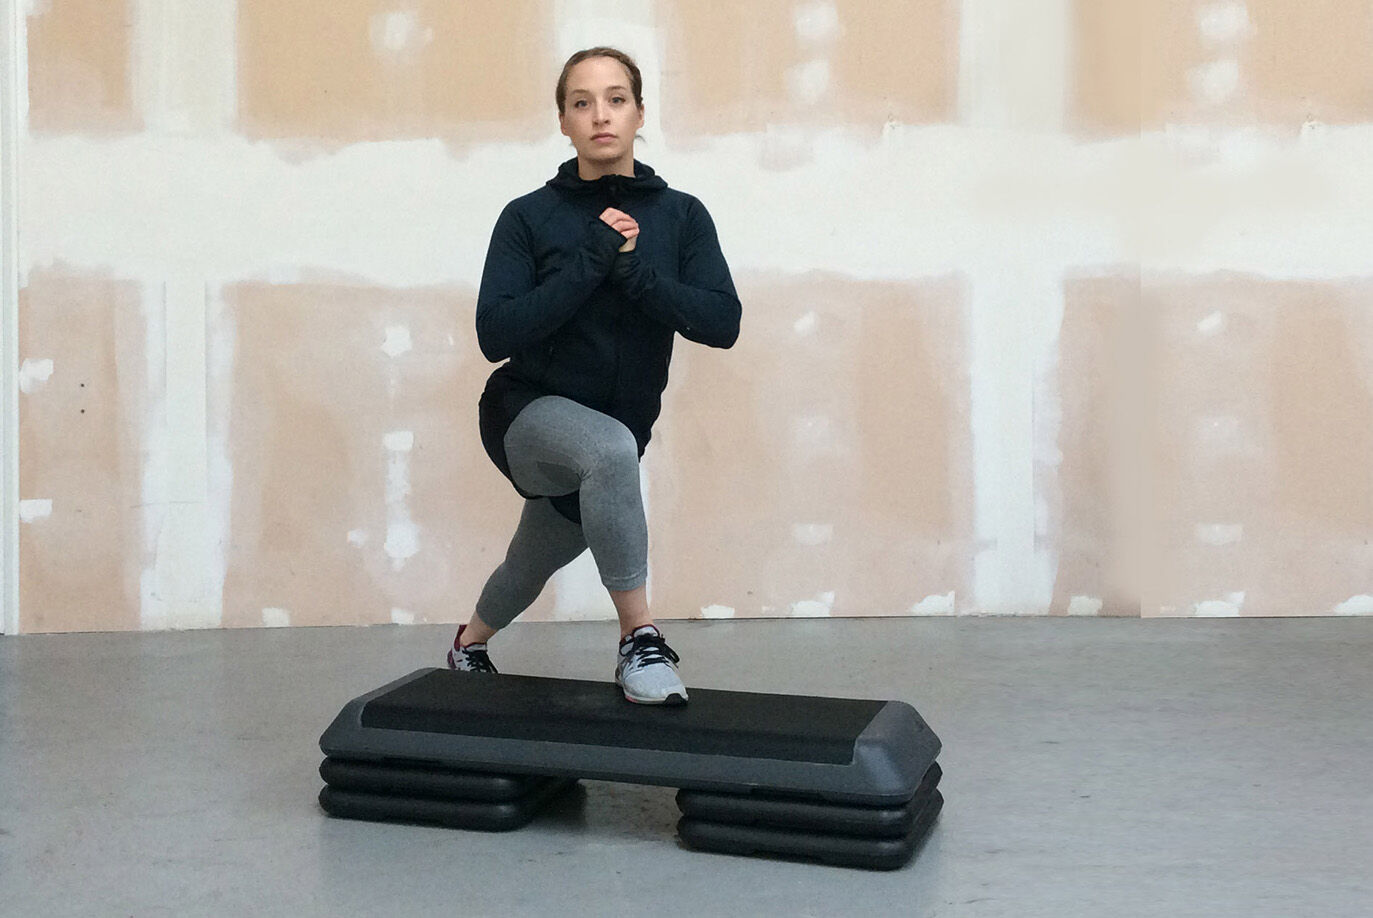 Aerobic Stepper from JTX Fitness